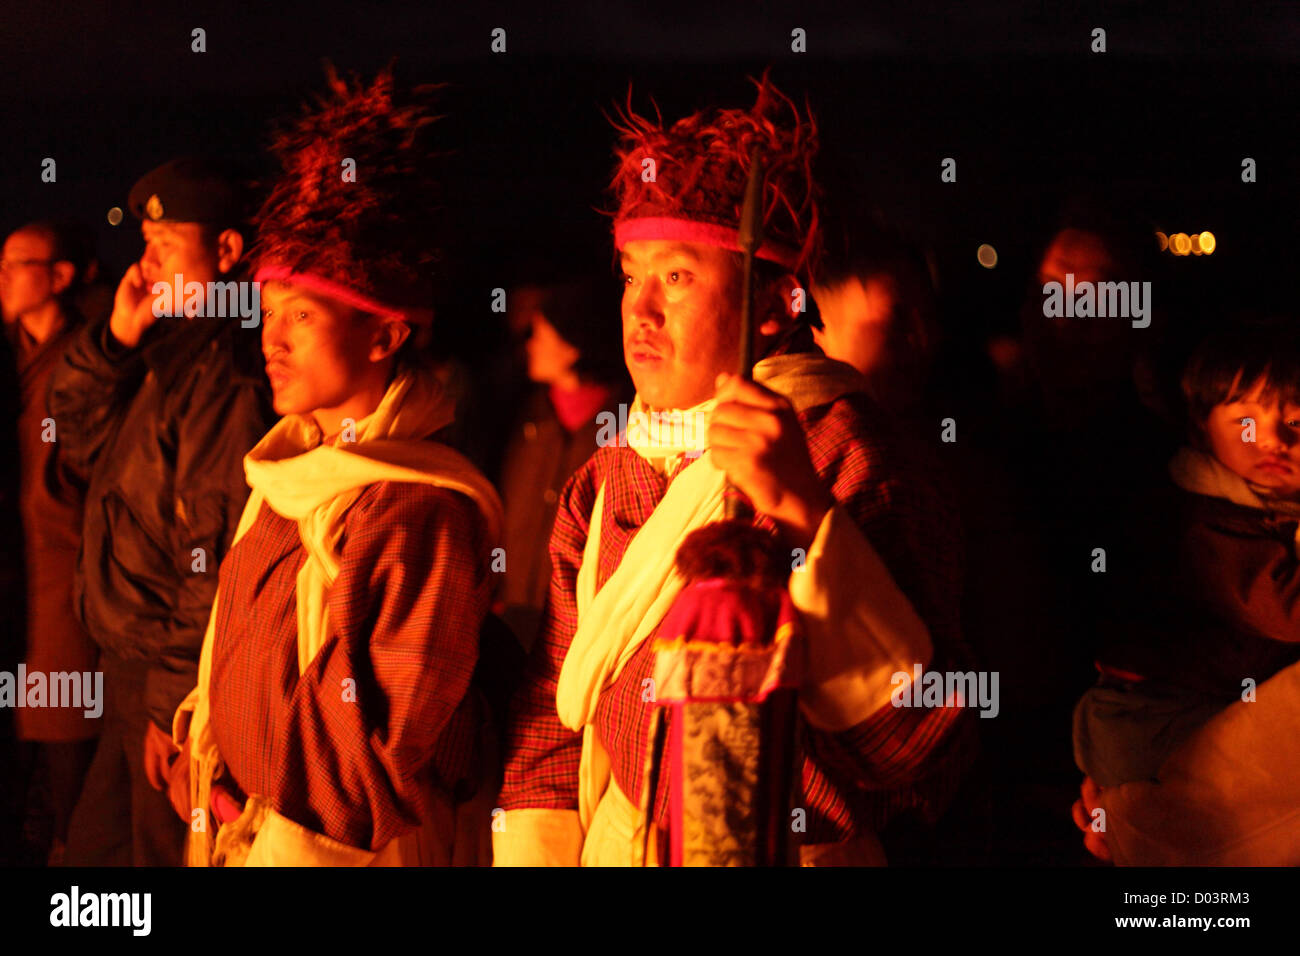 Monks worshiping at night in a Bhutan festival. - Stock Image